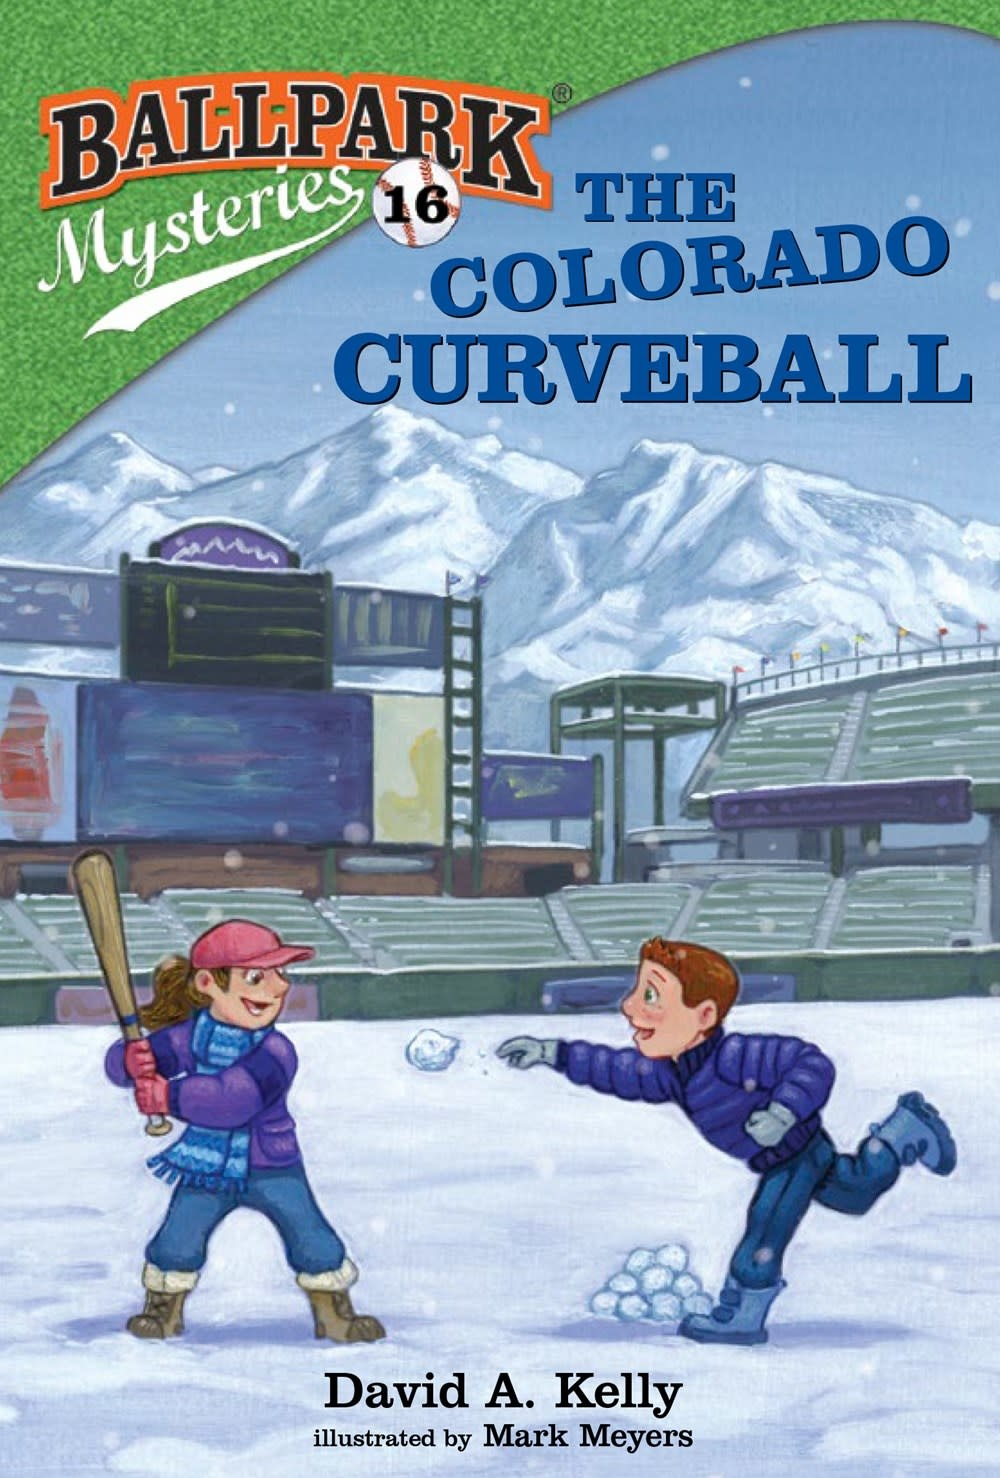 Random House Books for Young Readers Ballpark Mysteries 16 The Colorado Curveball